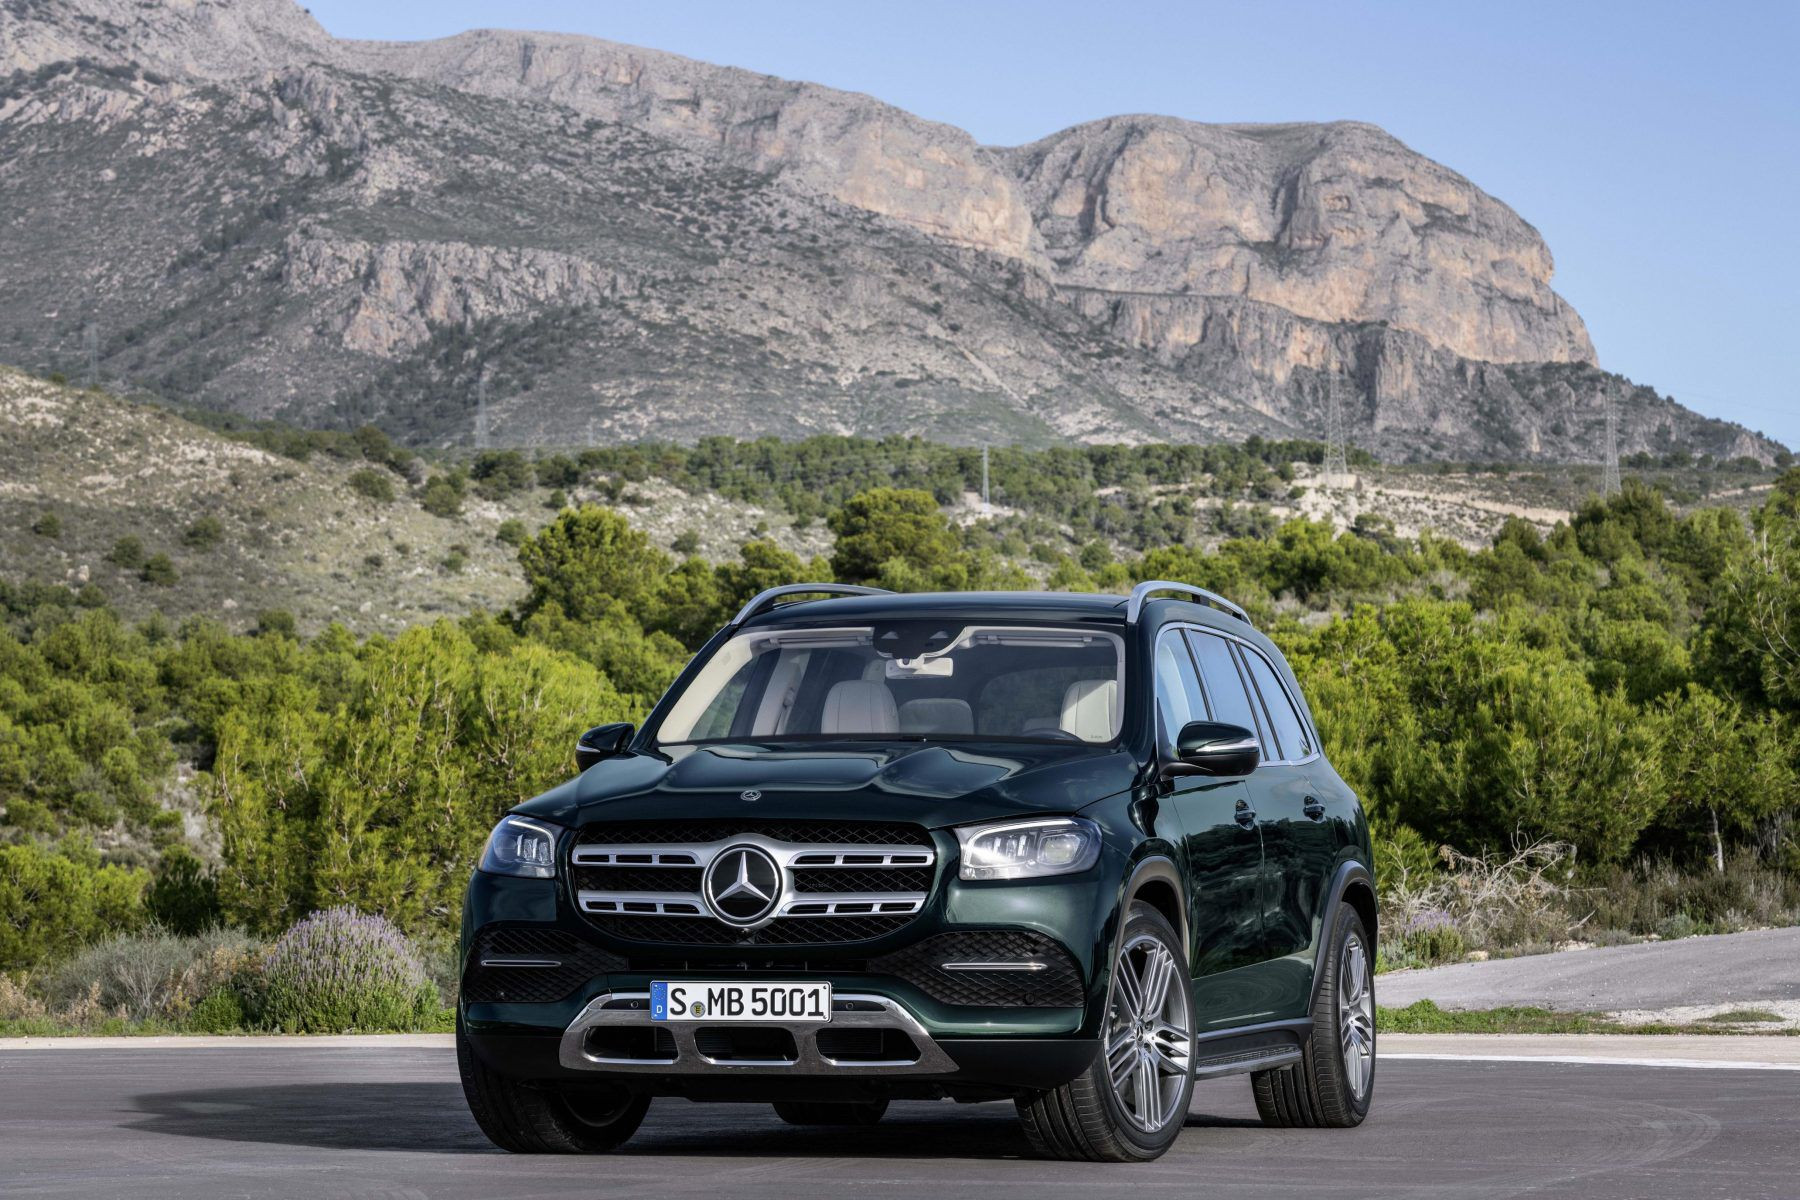 Mercedes GLS parking in front of mountains